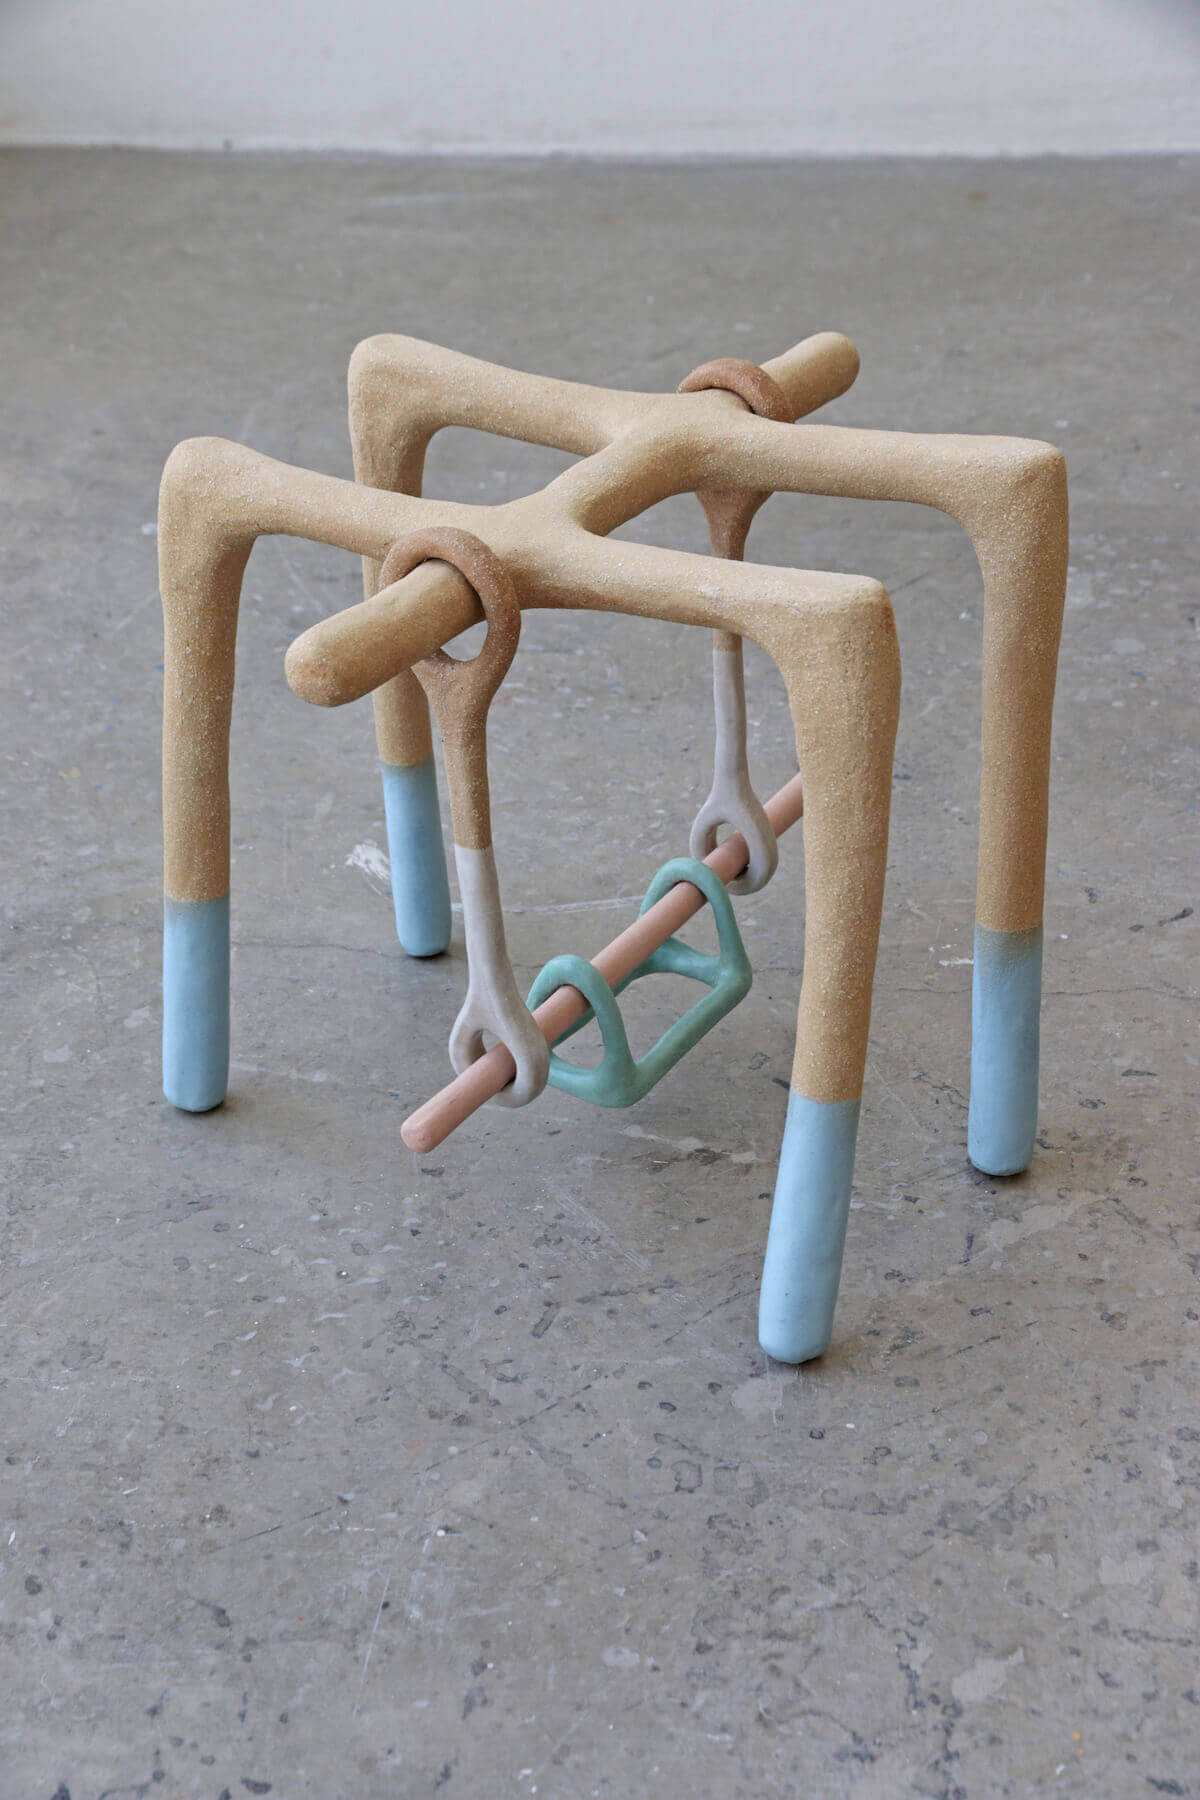 Ceramic sculpture in beige and light blue depicting rectangular bars supporting a simple bar swing.